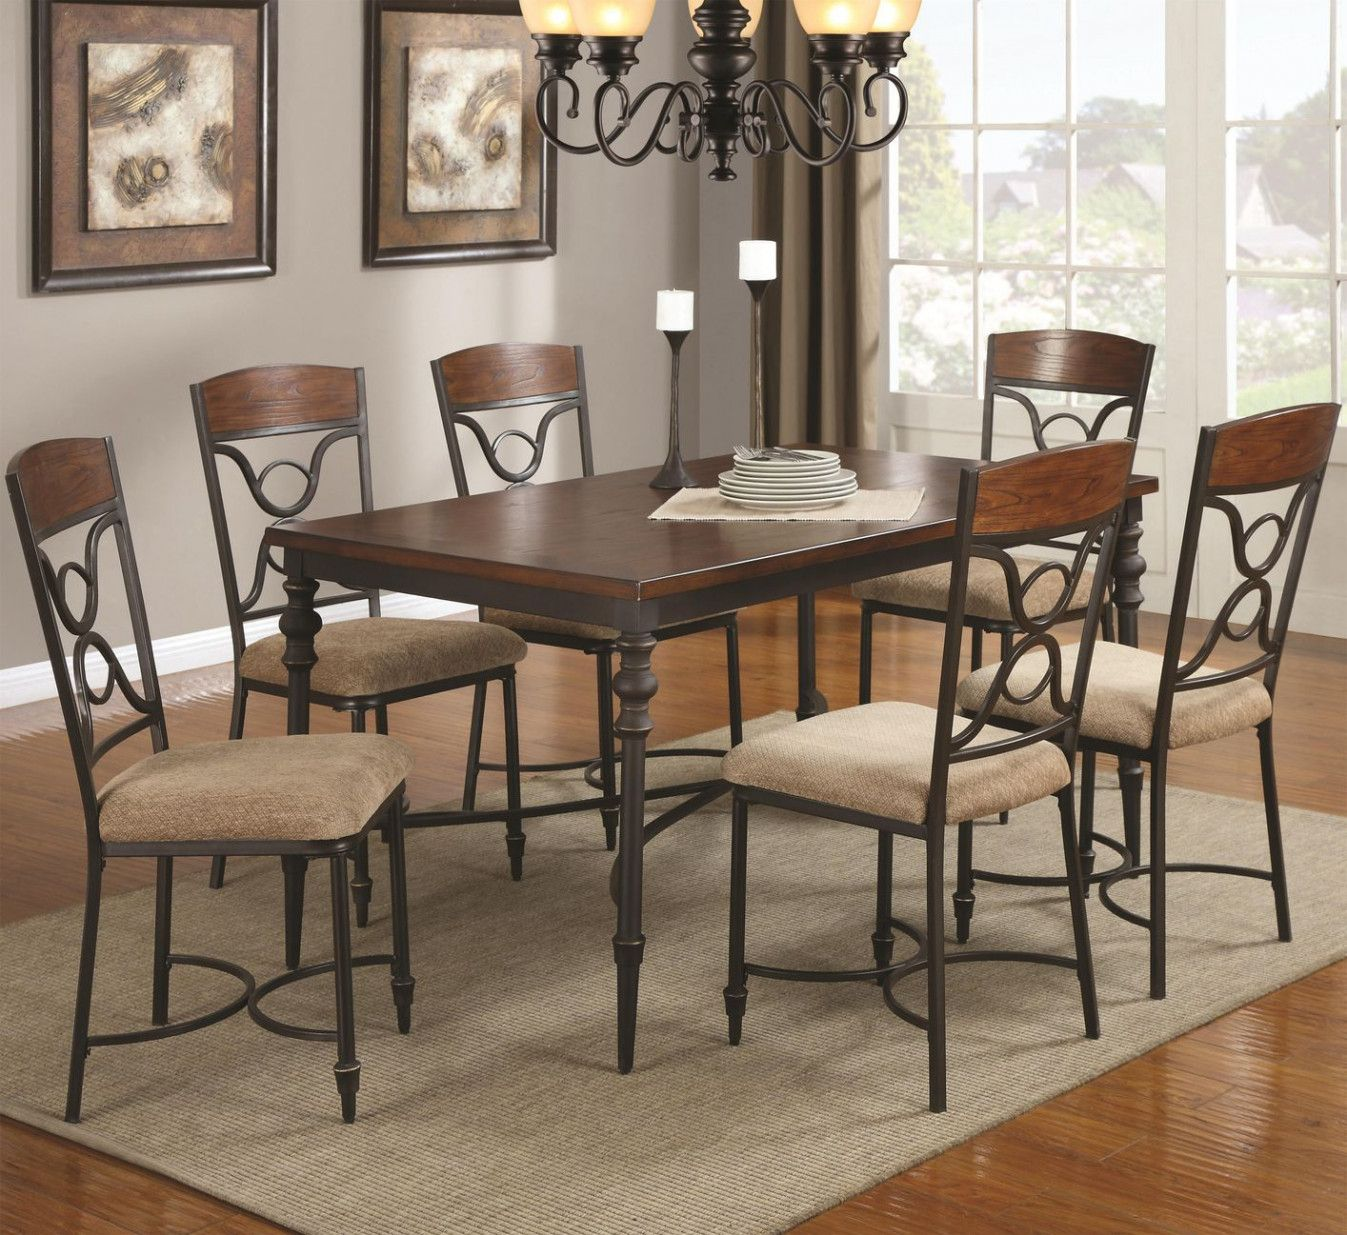 99 Cherry Wood Dining Room Chairs  Modern Affordable Furniture Unique Cherry Wood Dining Room Set Review